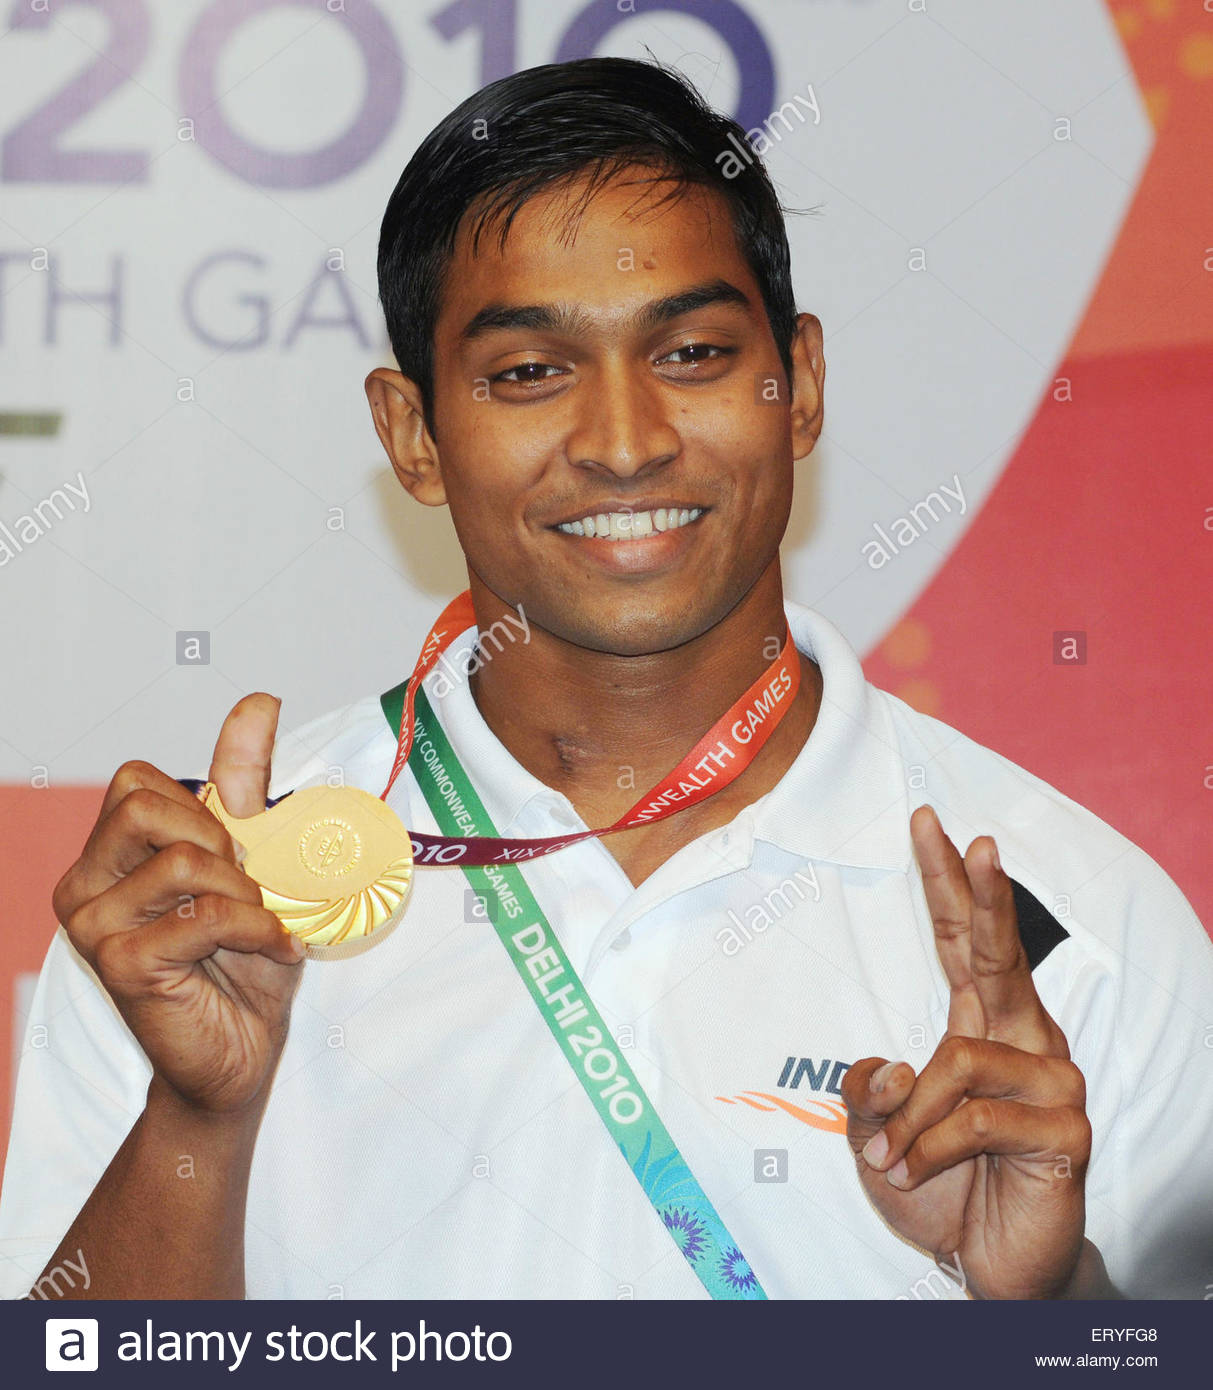 K ravi kumar gold  medal winner in 69 kg weightlifting competition in nineteen commonwealth games ; New Delhi ; - Stock Image